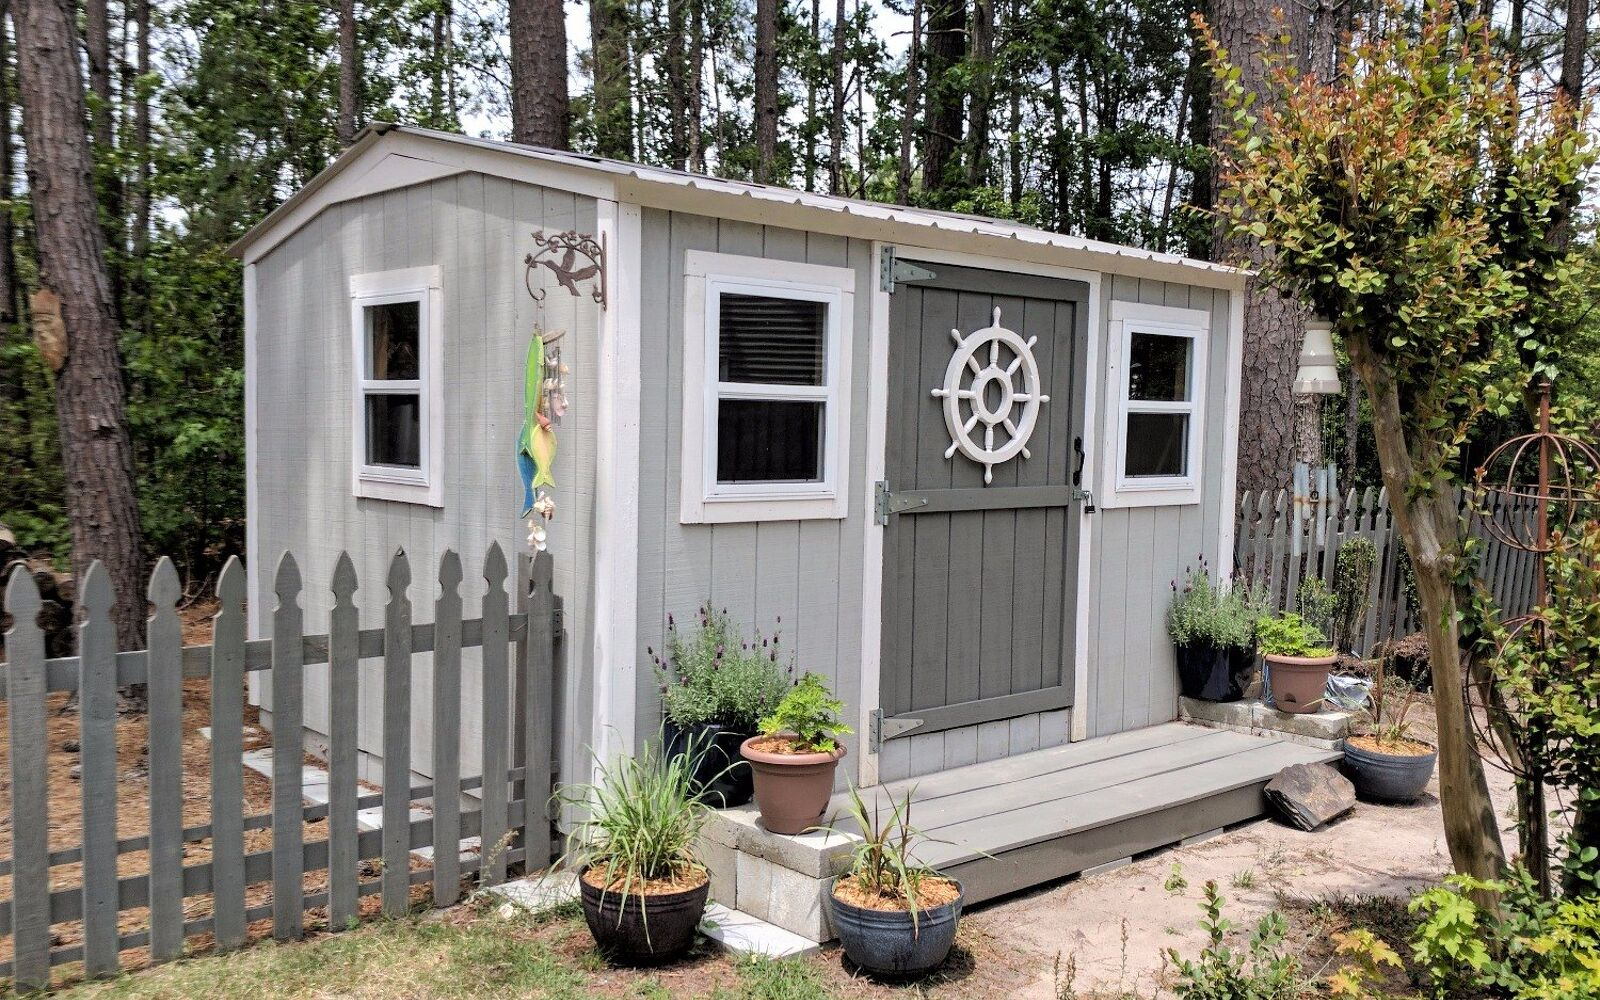 s upgrade your backyard with these 30 clever ideas, Give yourself a stunning storage shed